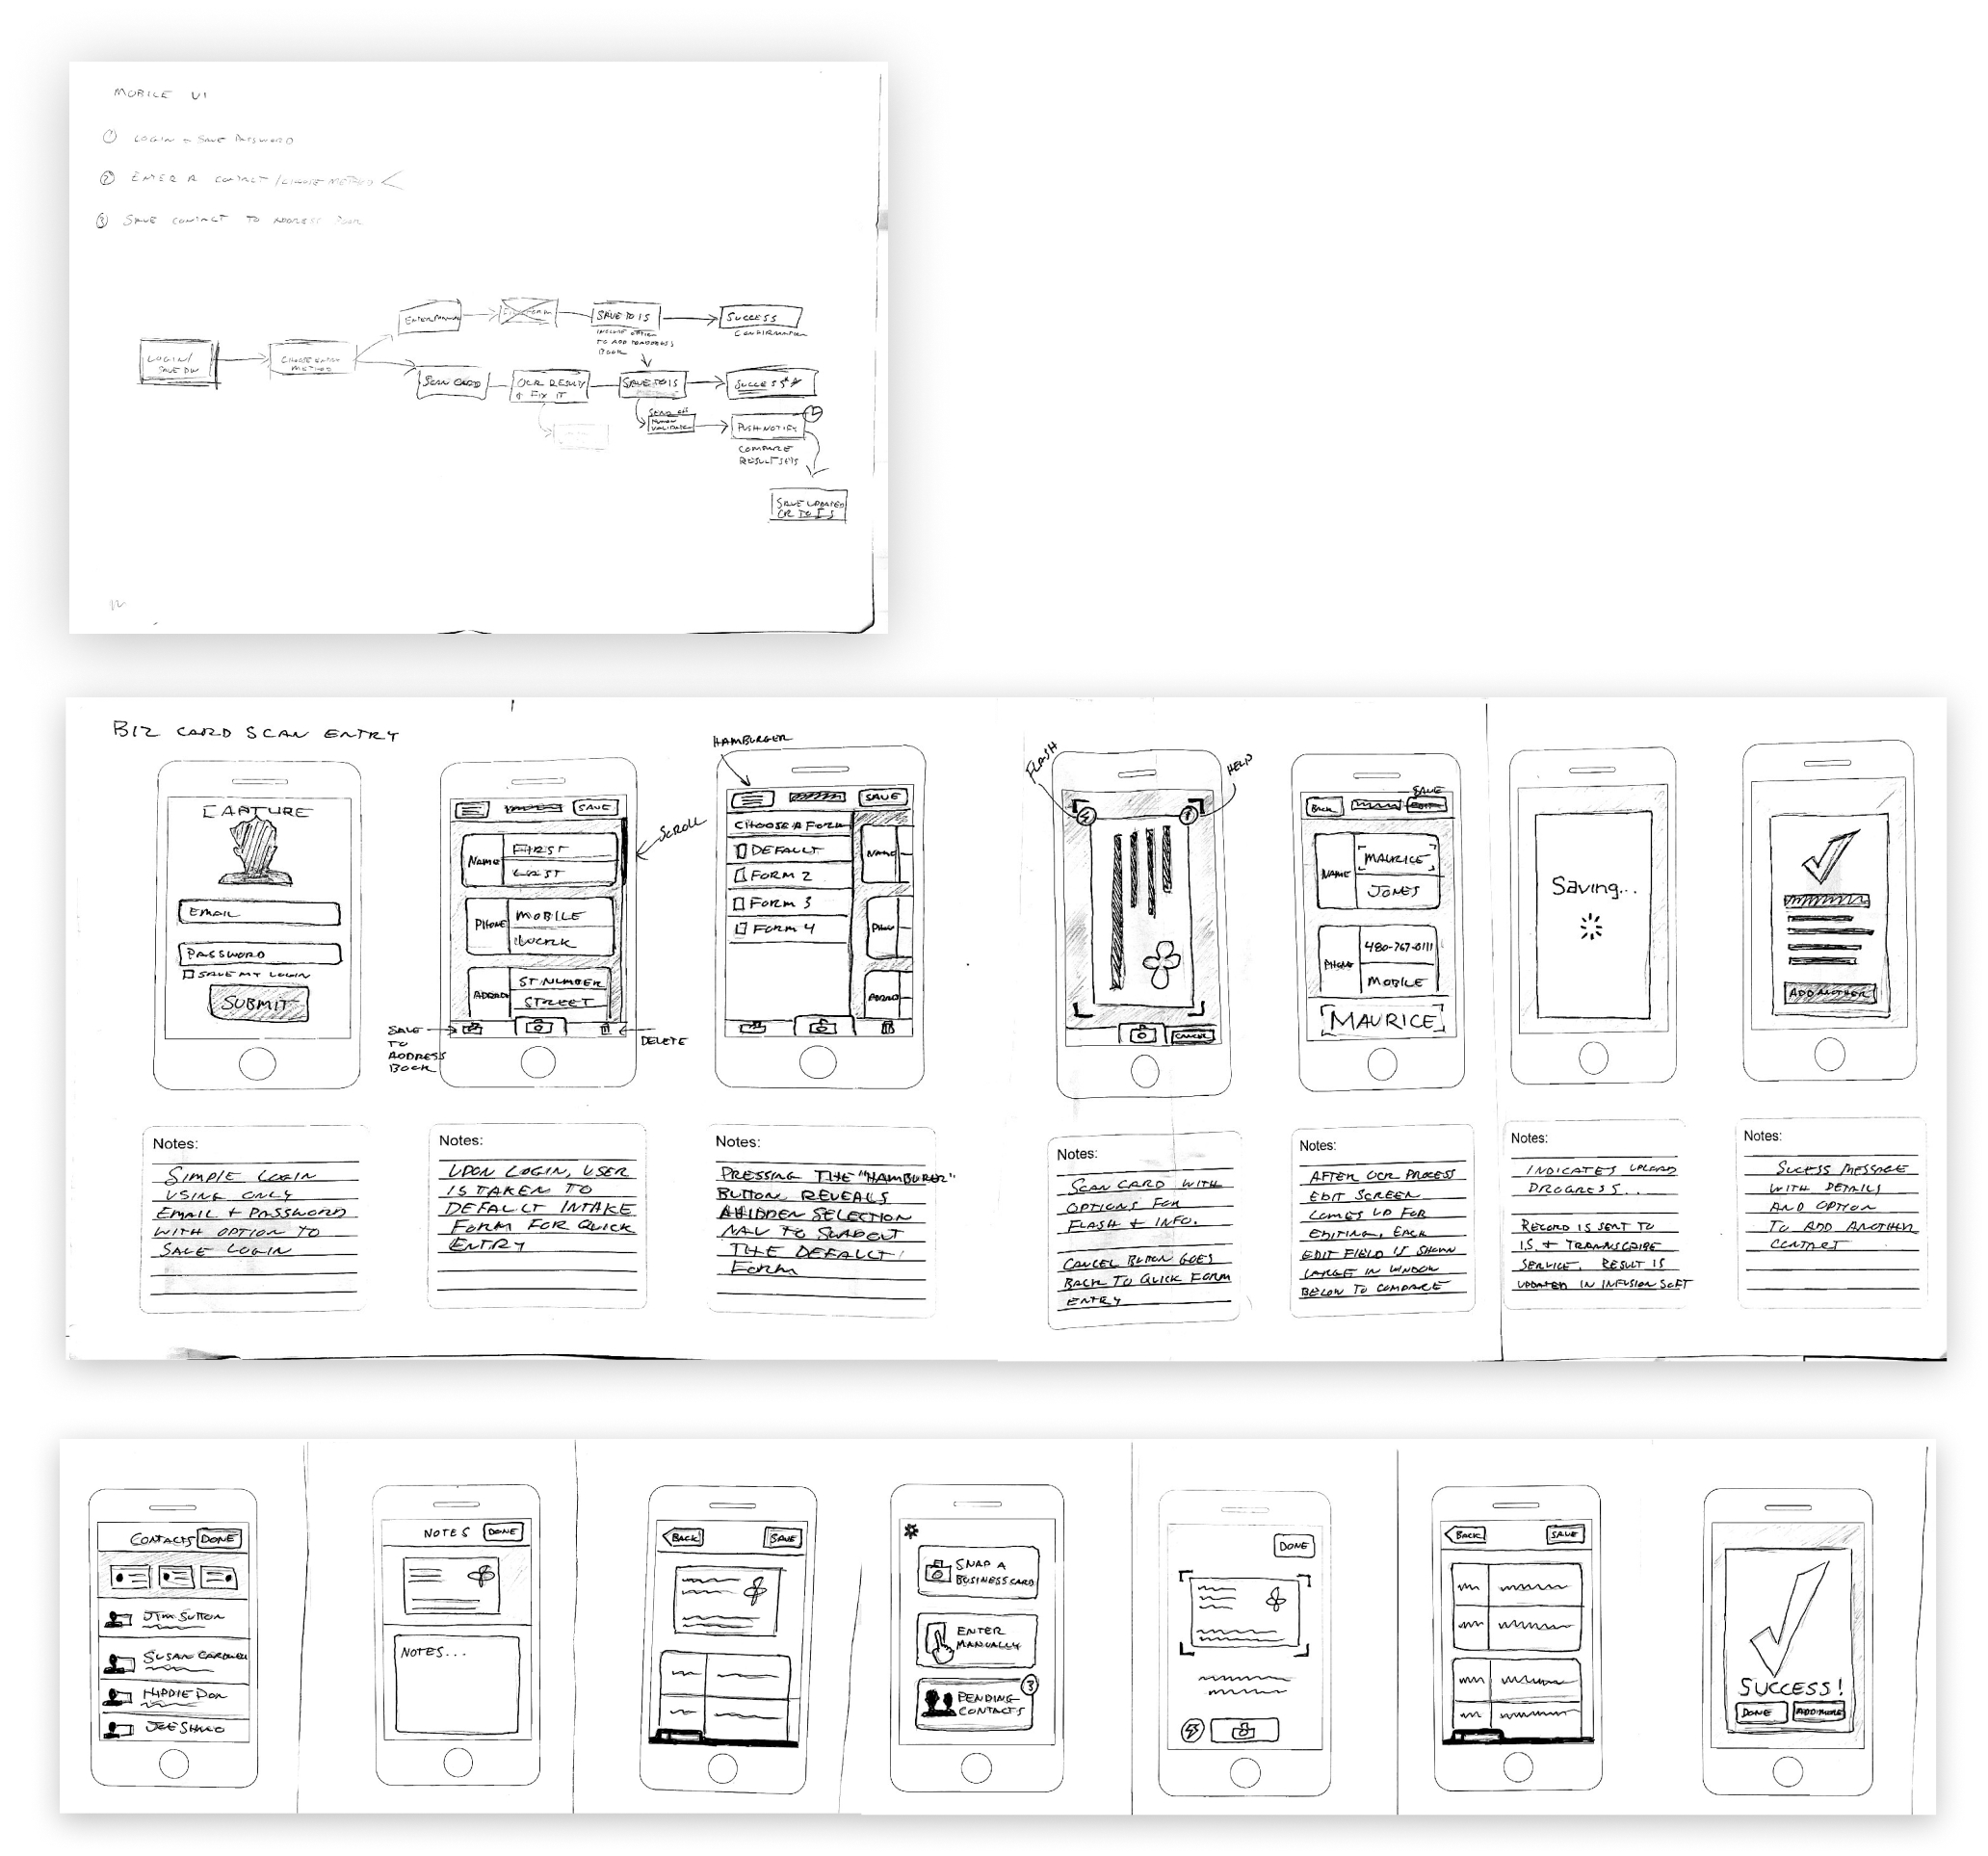 Allstate Identity Protection - Wireframes